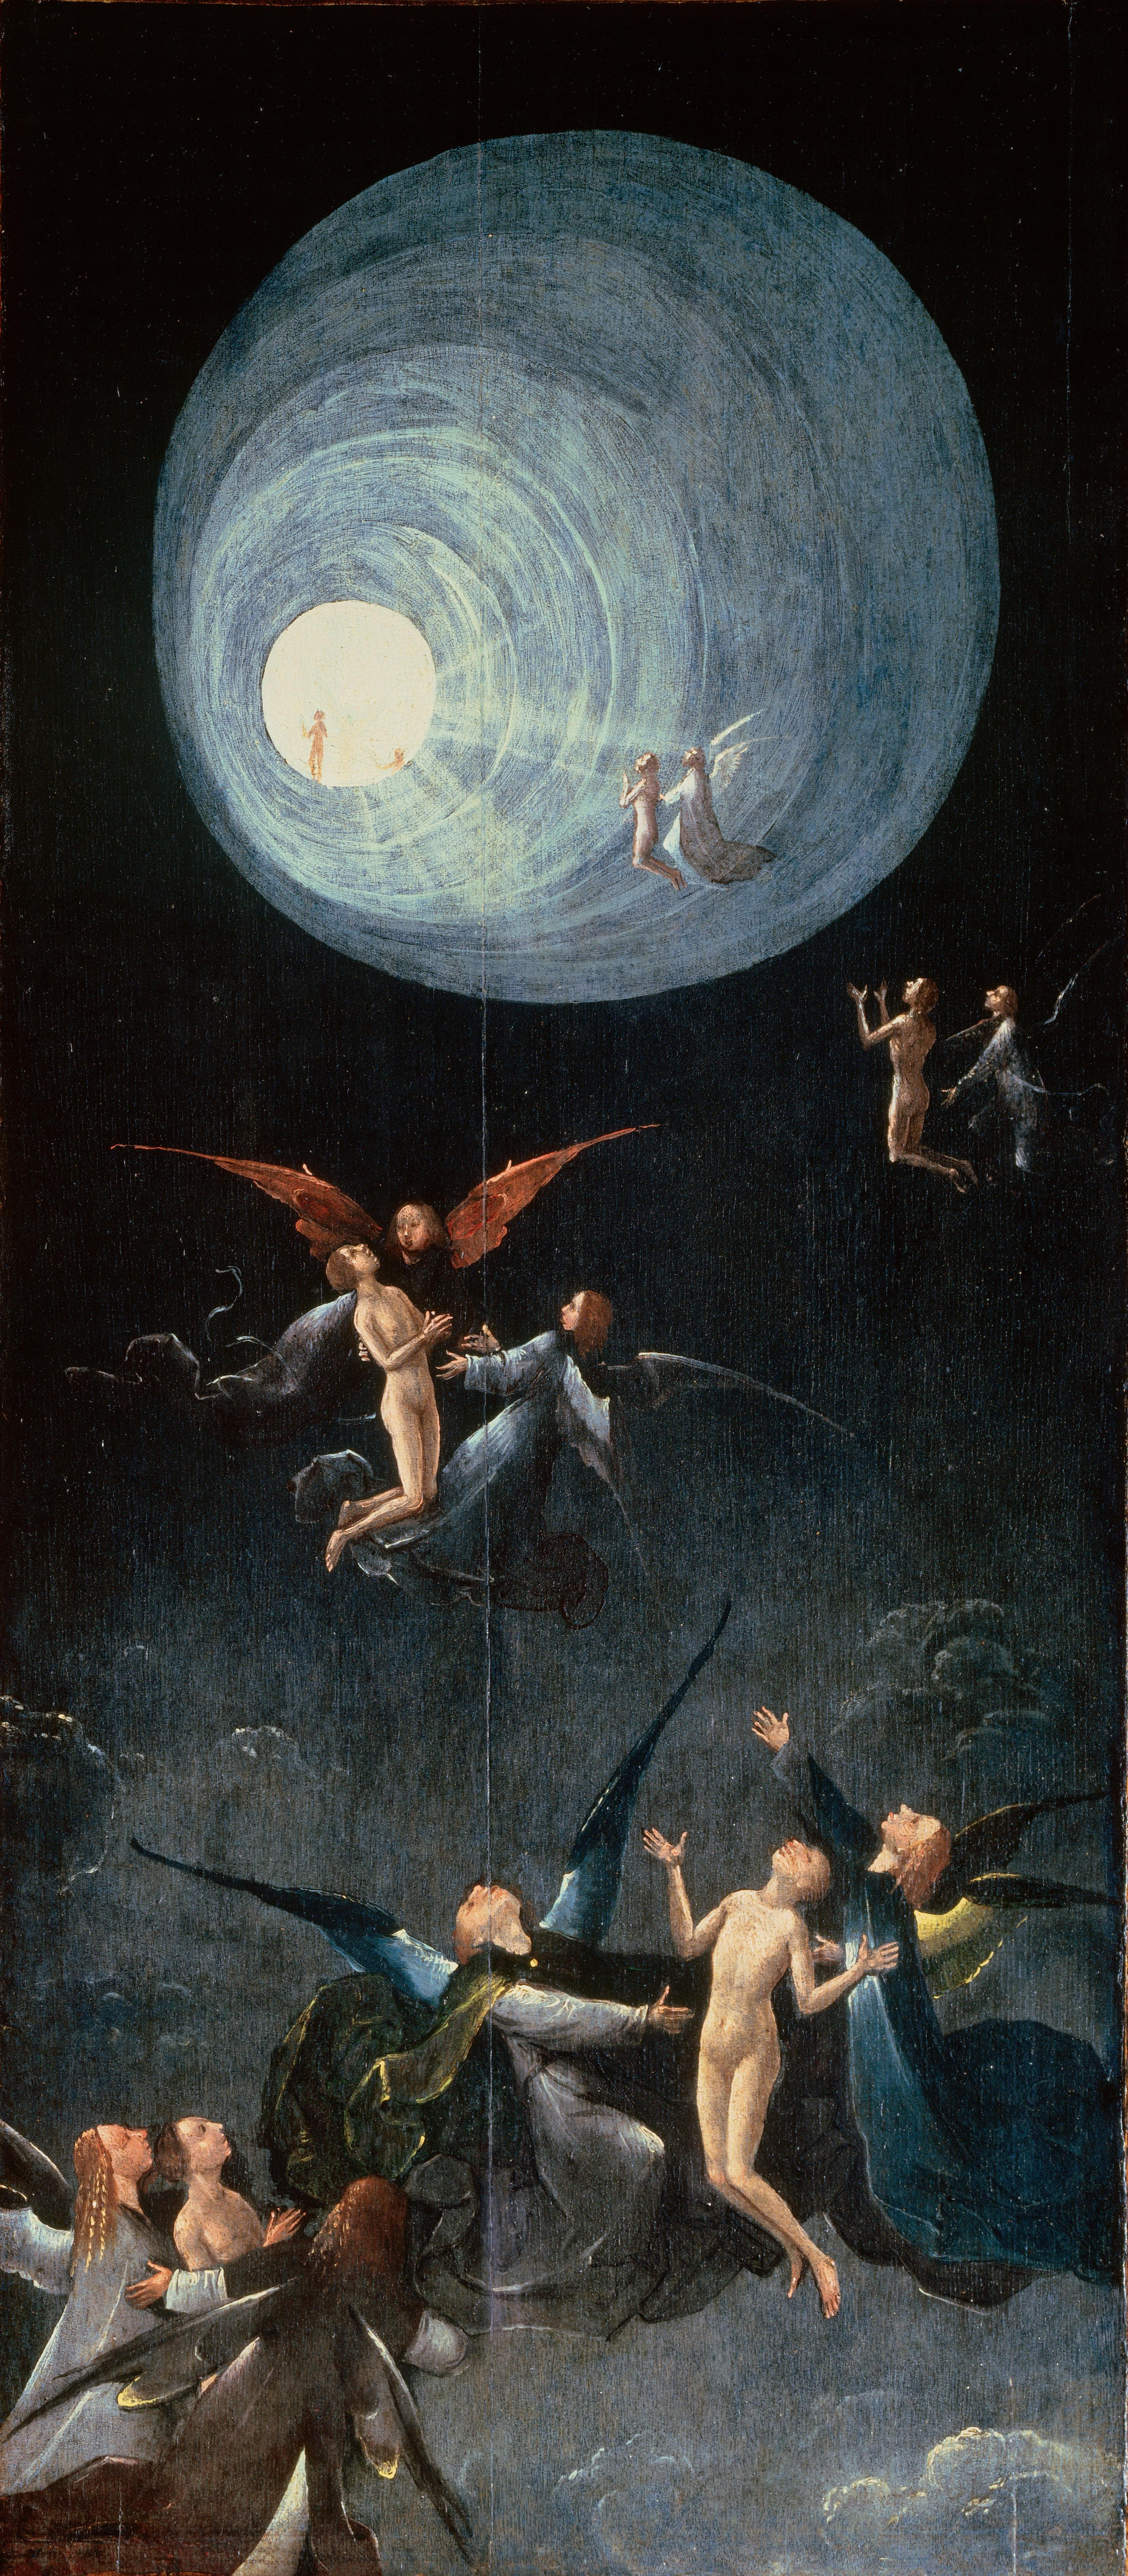 """Ascent of the Blessed,"" Hieronymus Bosch, c. 1490 (image via Wikimedia Commons)"